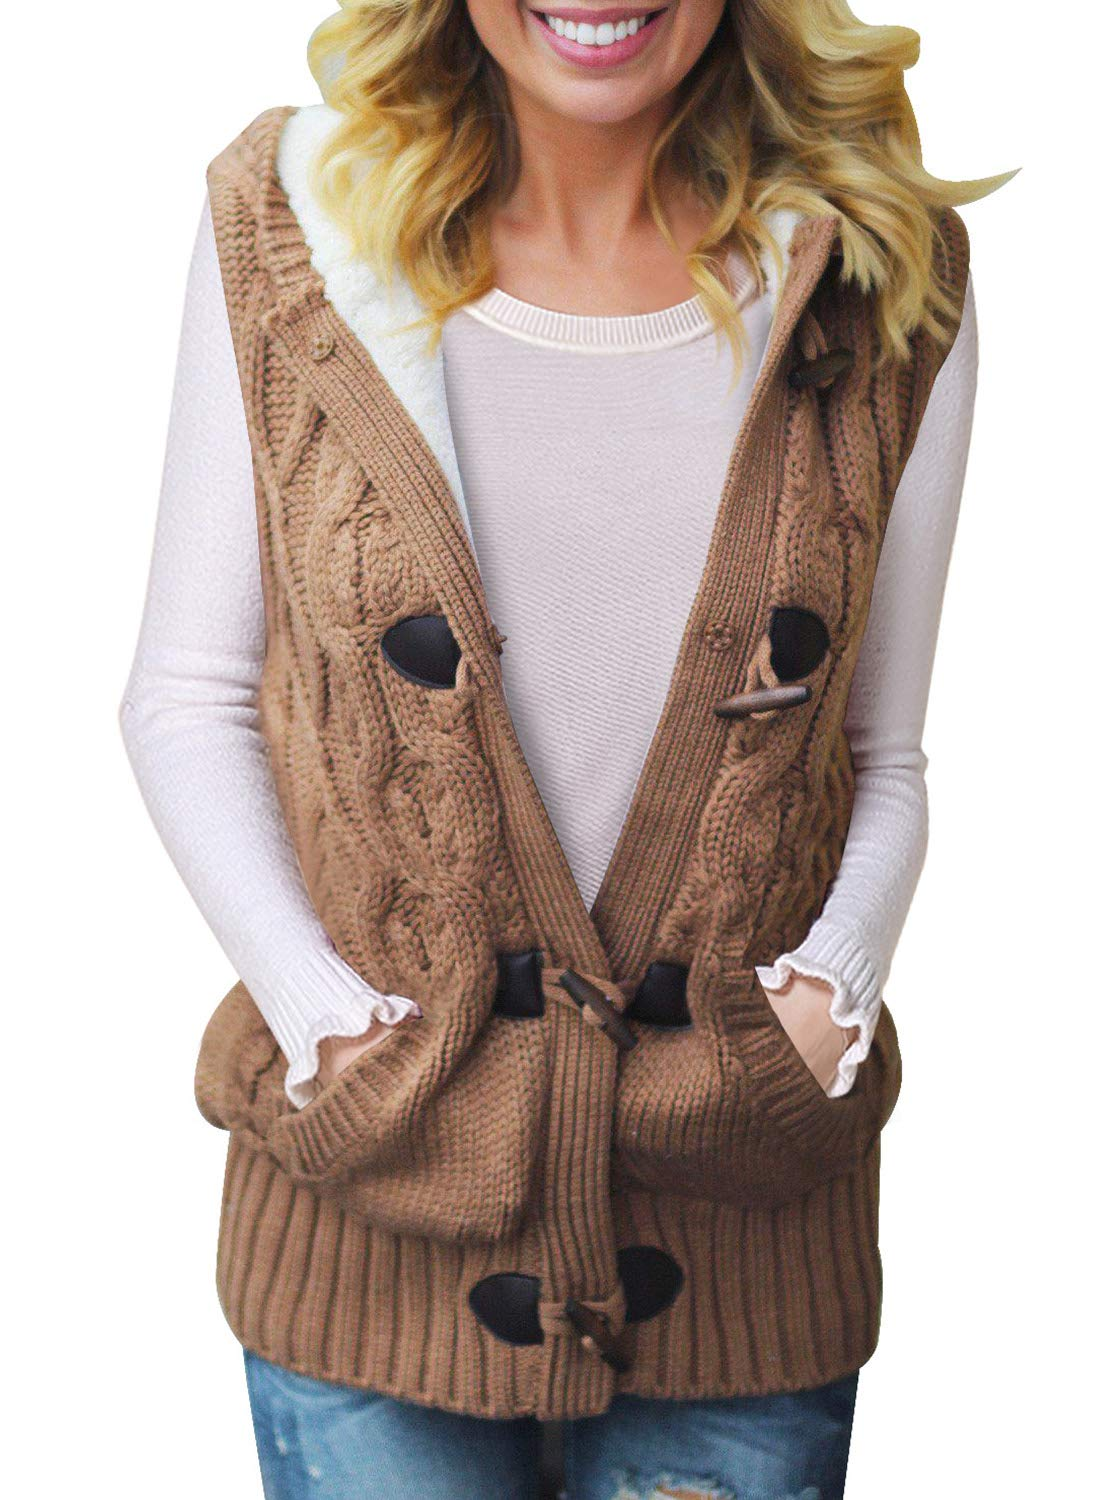 SIDEFEEL Women Hooded Sweater Vest Cable Knit Cardigan Outerwear Coat Large Khaki by SIDEFEEL